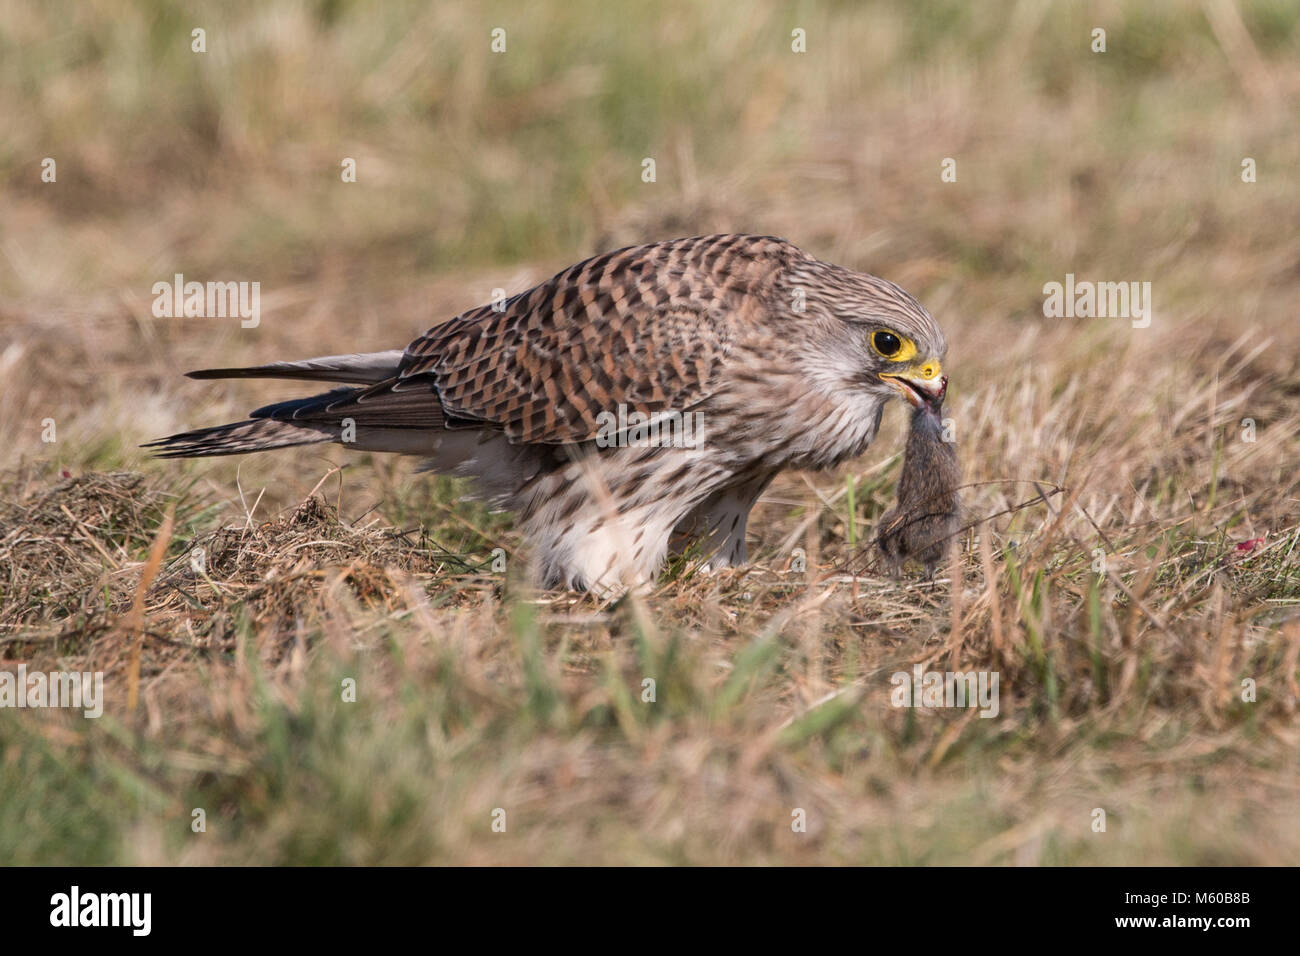 Common Kestrel (Falco tinnunculus). Female with mouse prey standing on the ground. Germany.. - Stock Image